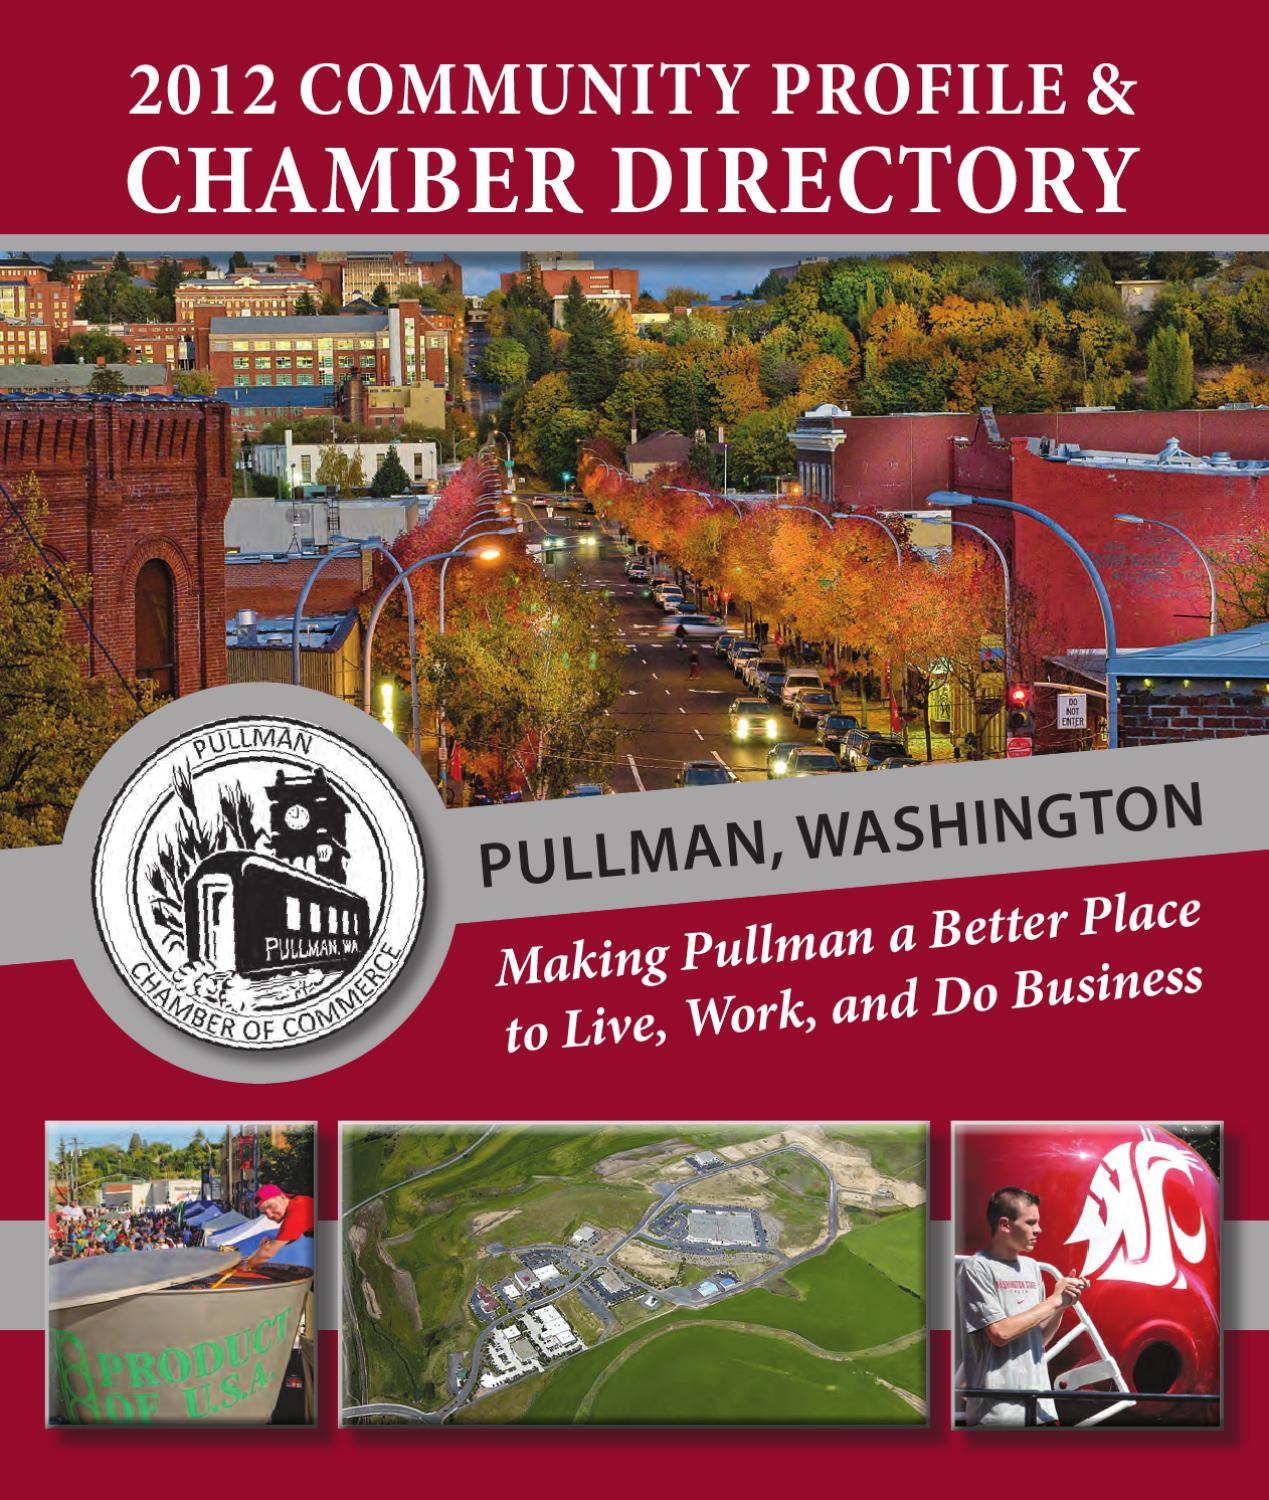 2012 Pullman Chamber Directory By Moscow Daily News